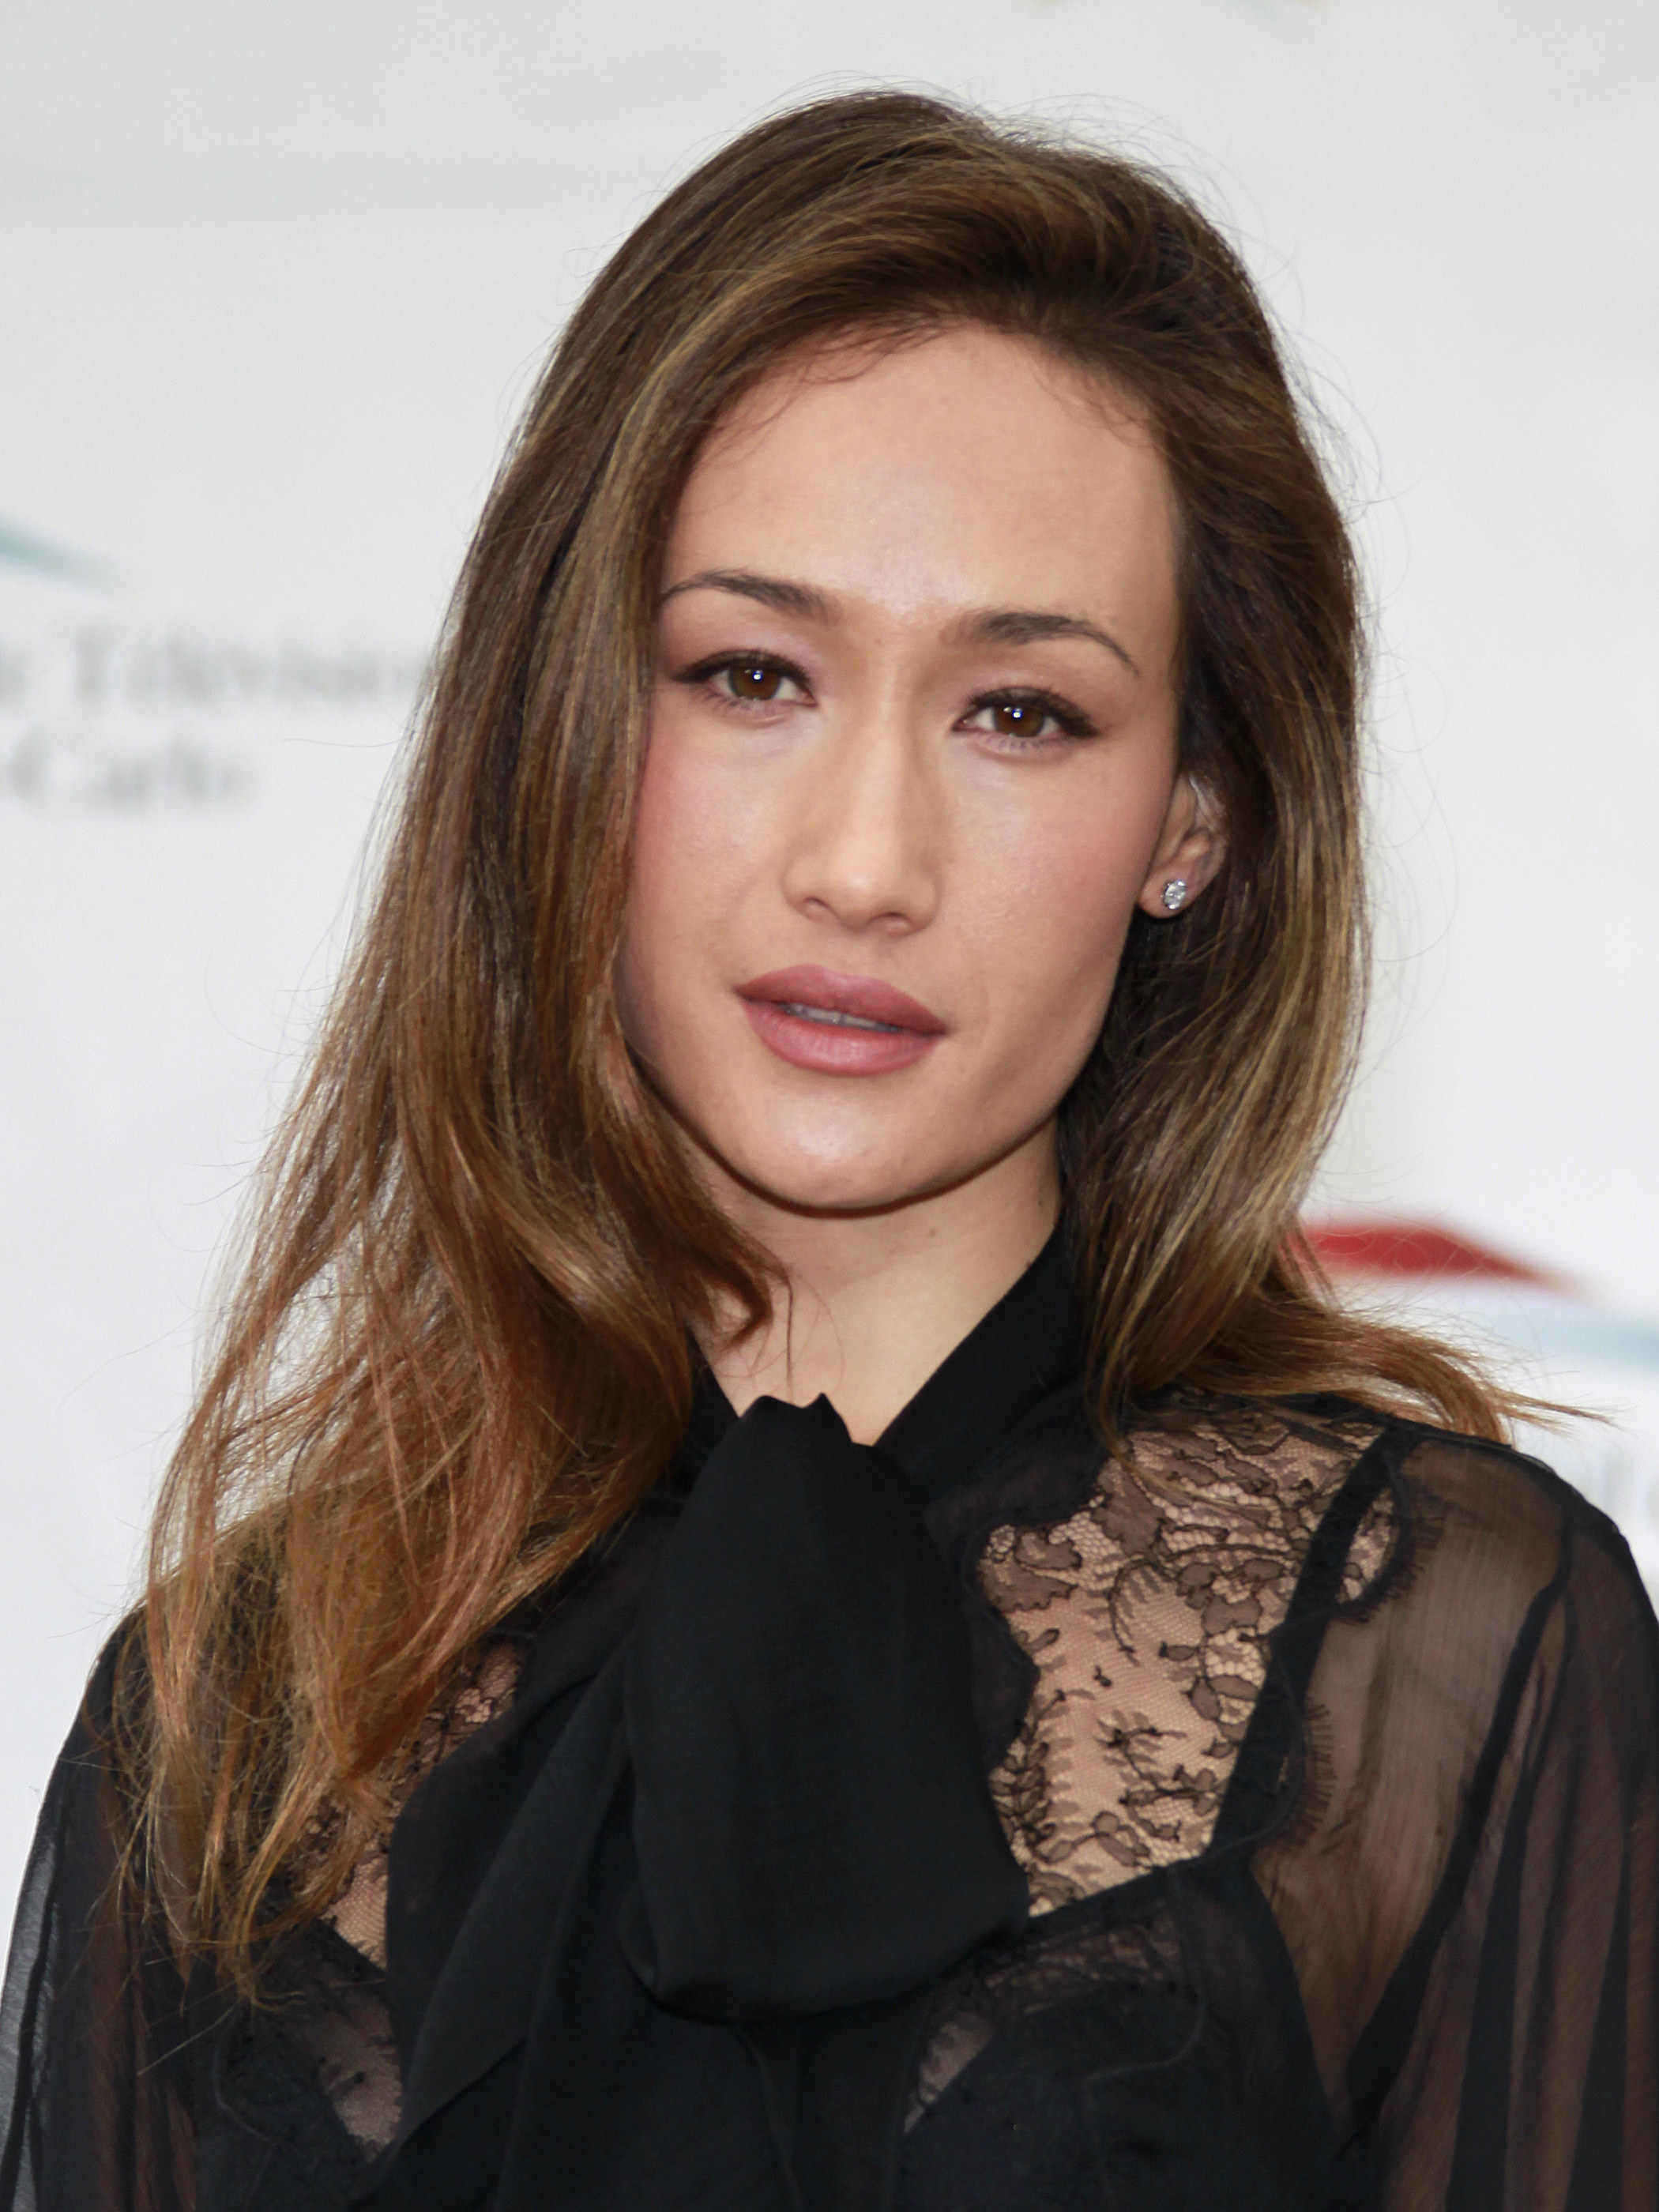 Maggie Q smiles wearing a black, chiffon blouse and neck tie